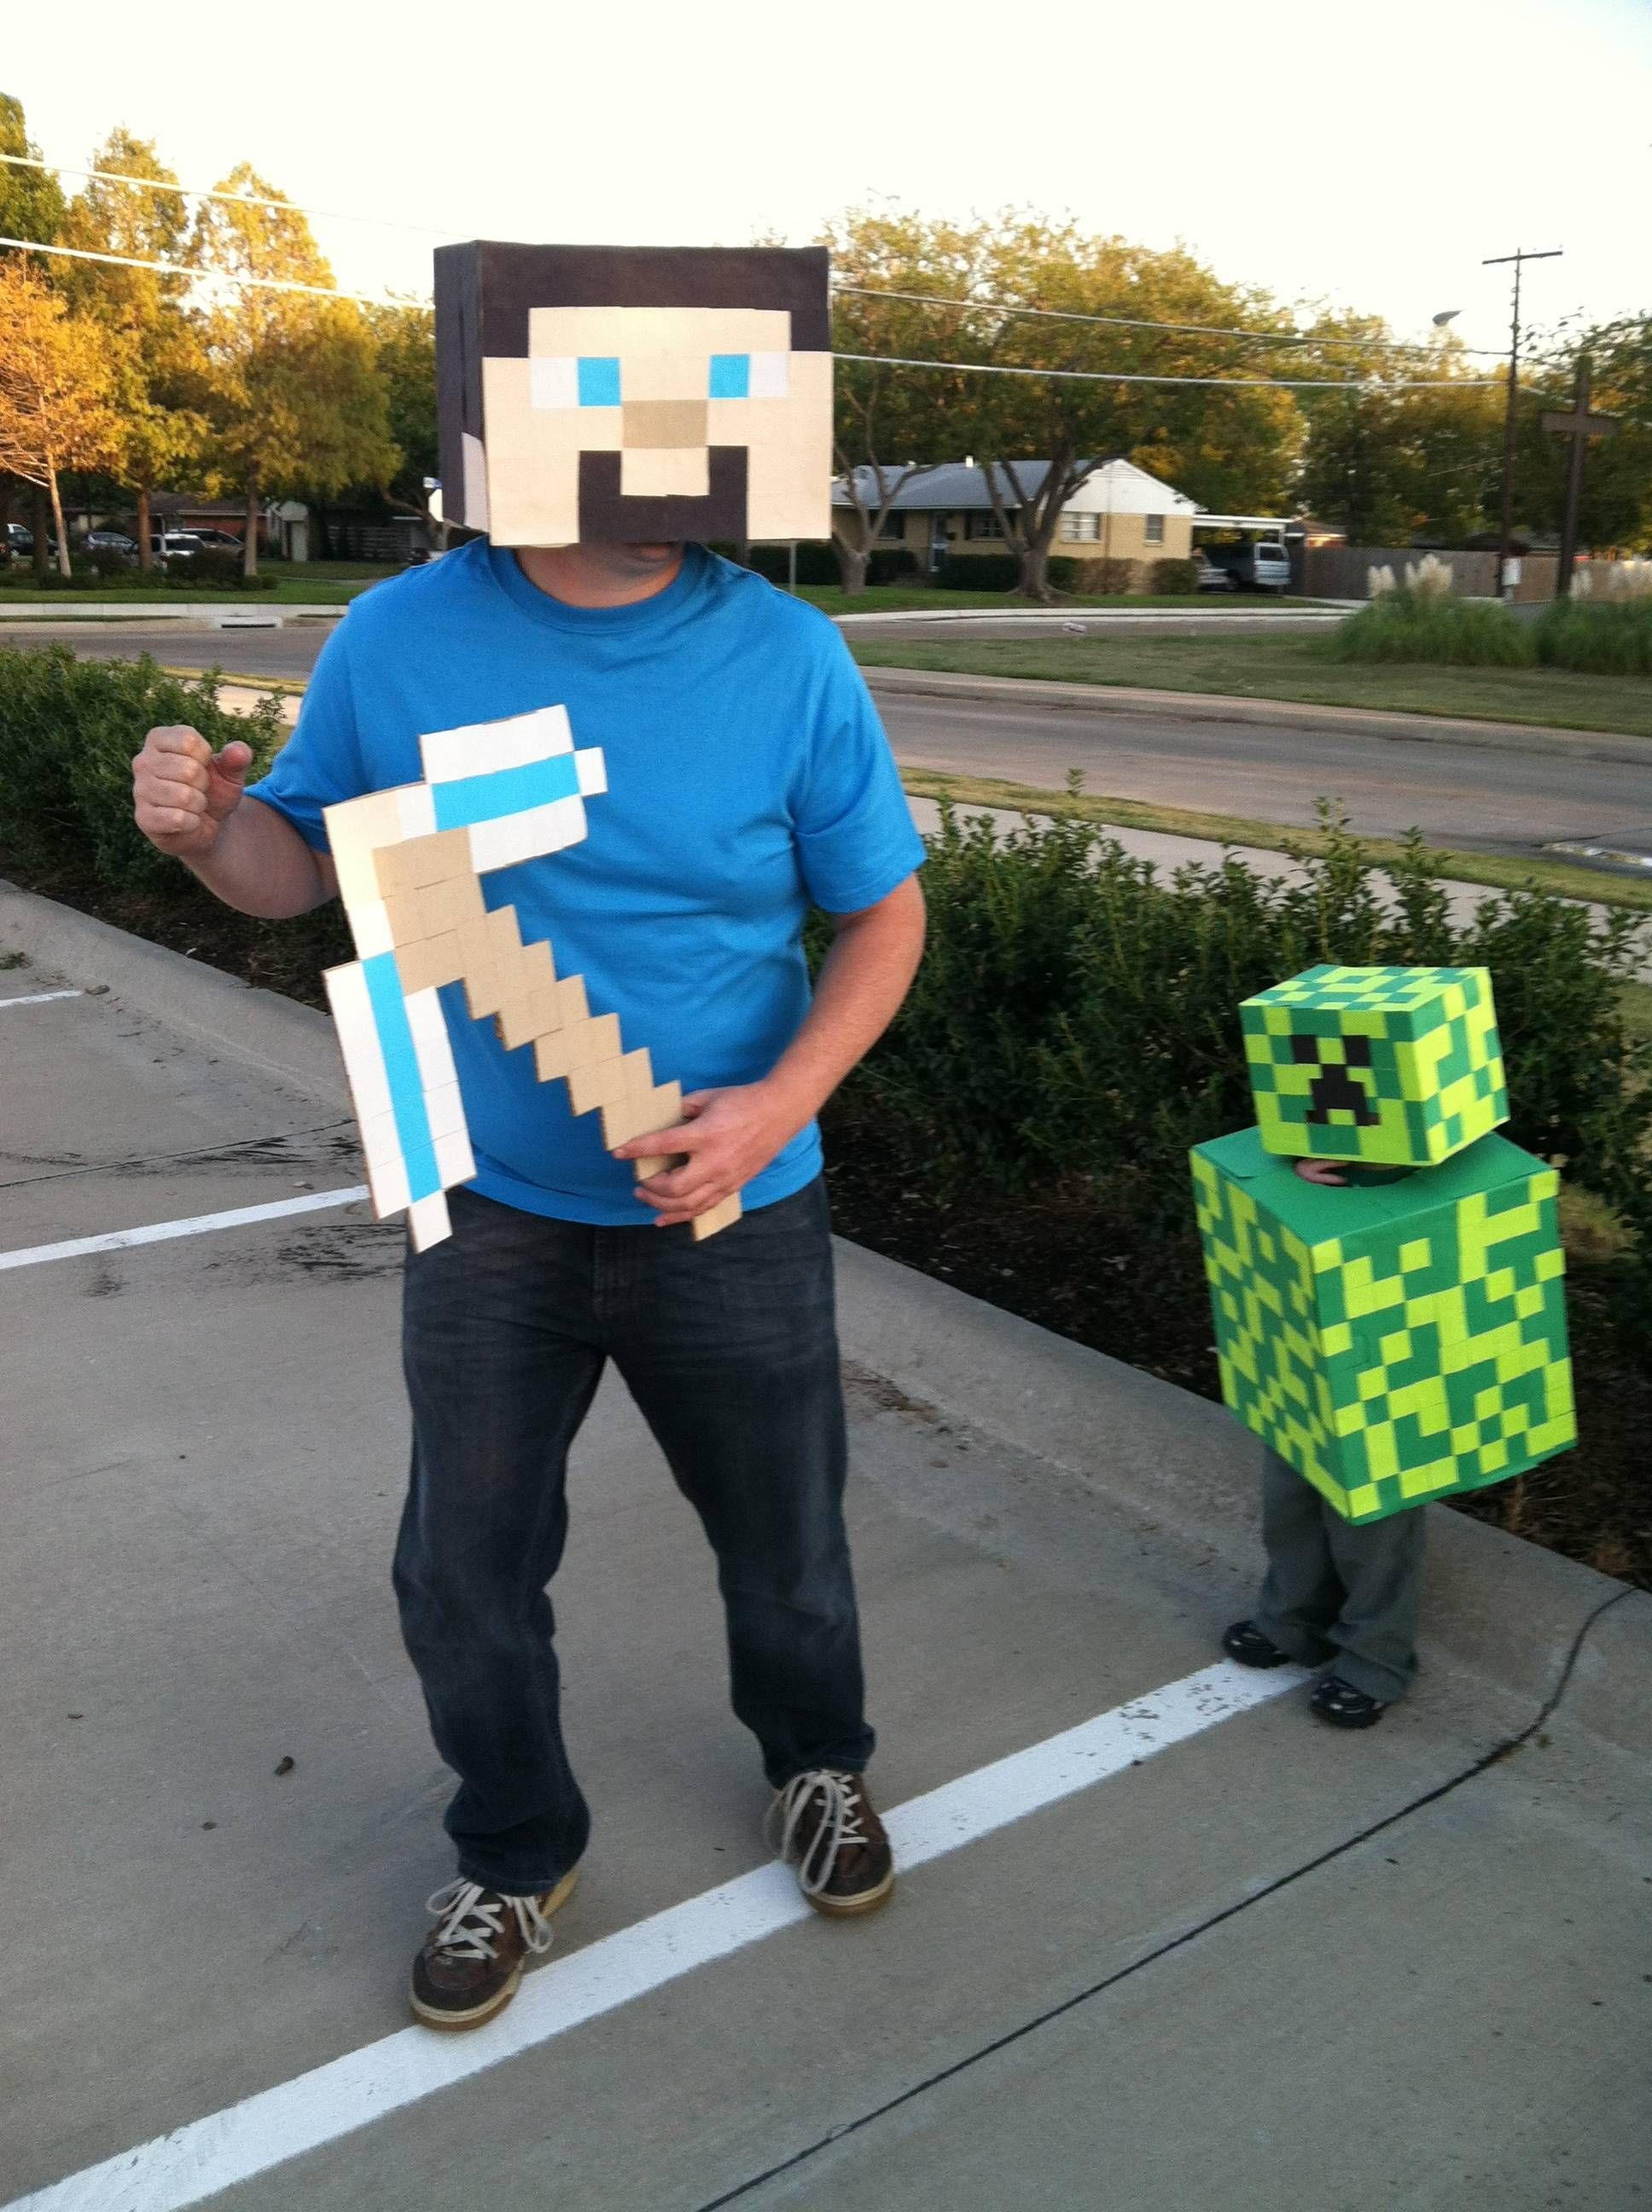 cosplay cardboard minecraft 2 year old creeper kid costume & Bwahahahaha. | Minecraft costume | Pinterest | Costumes Homemade ...